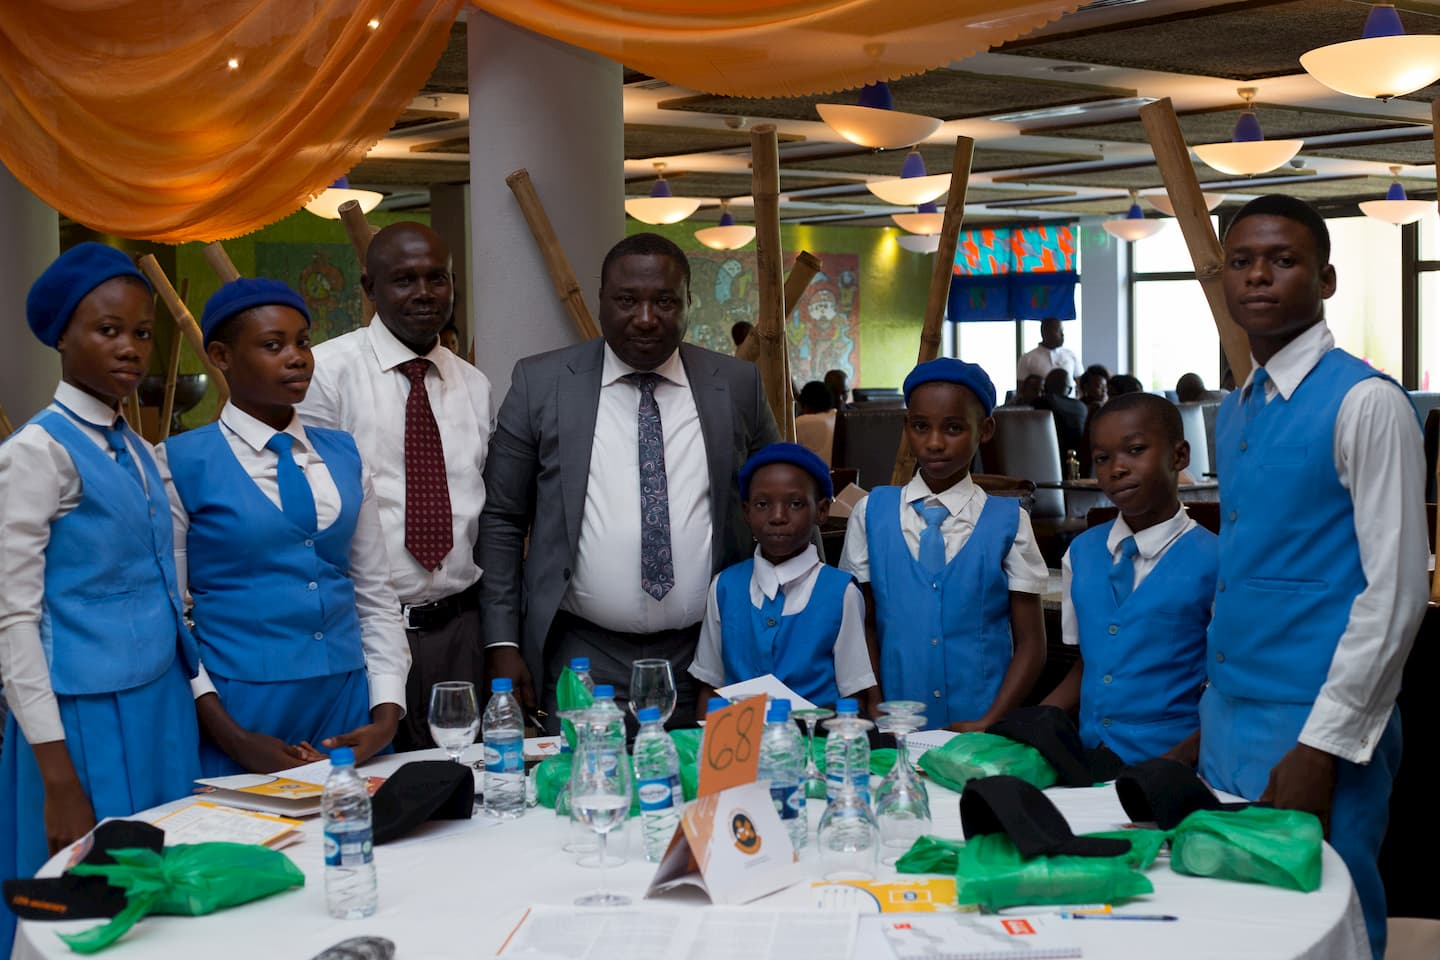 The Students of Com Sec Com Sch Ikot Akpan Ishiet a school adopted by Pastor Uwem Andrew Essien